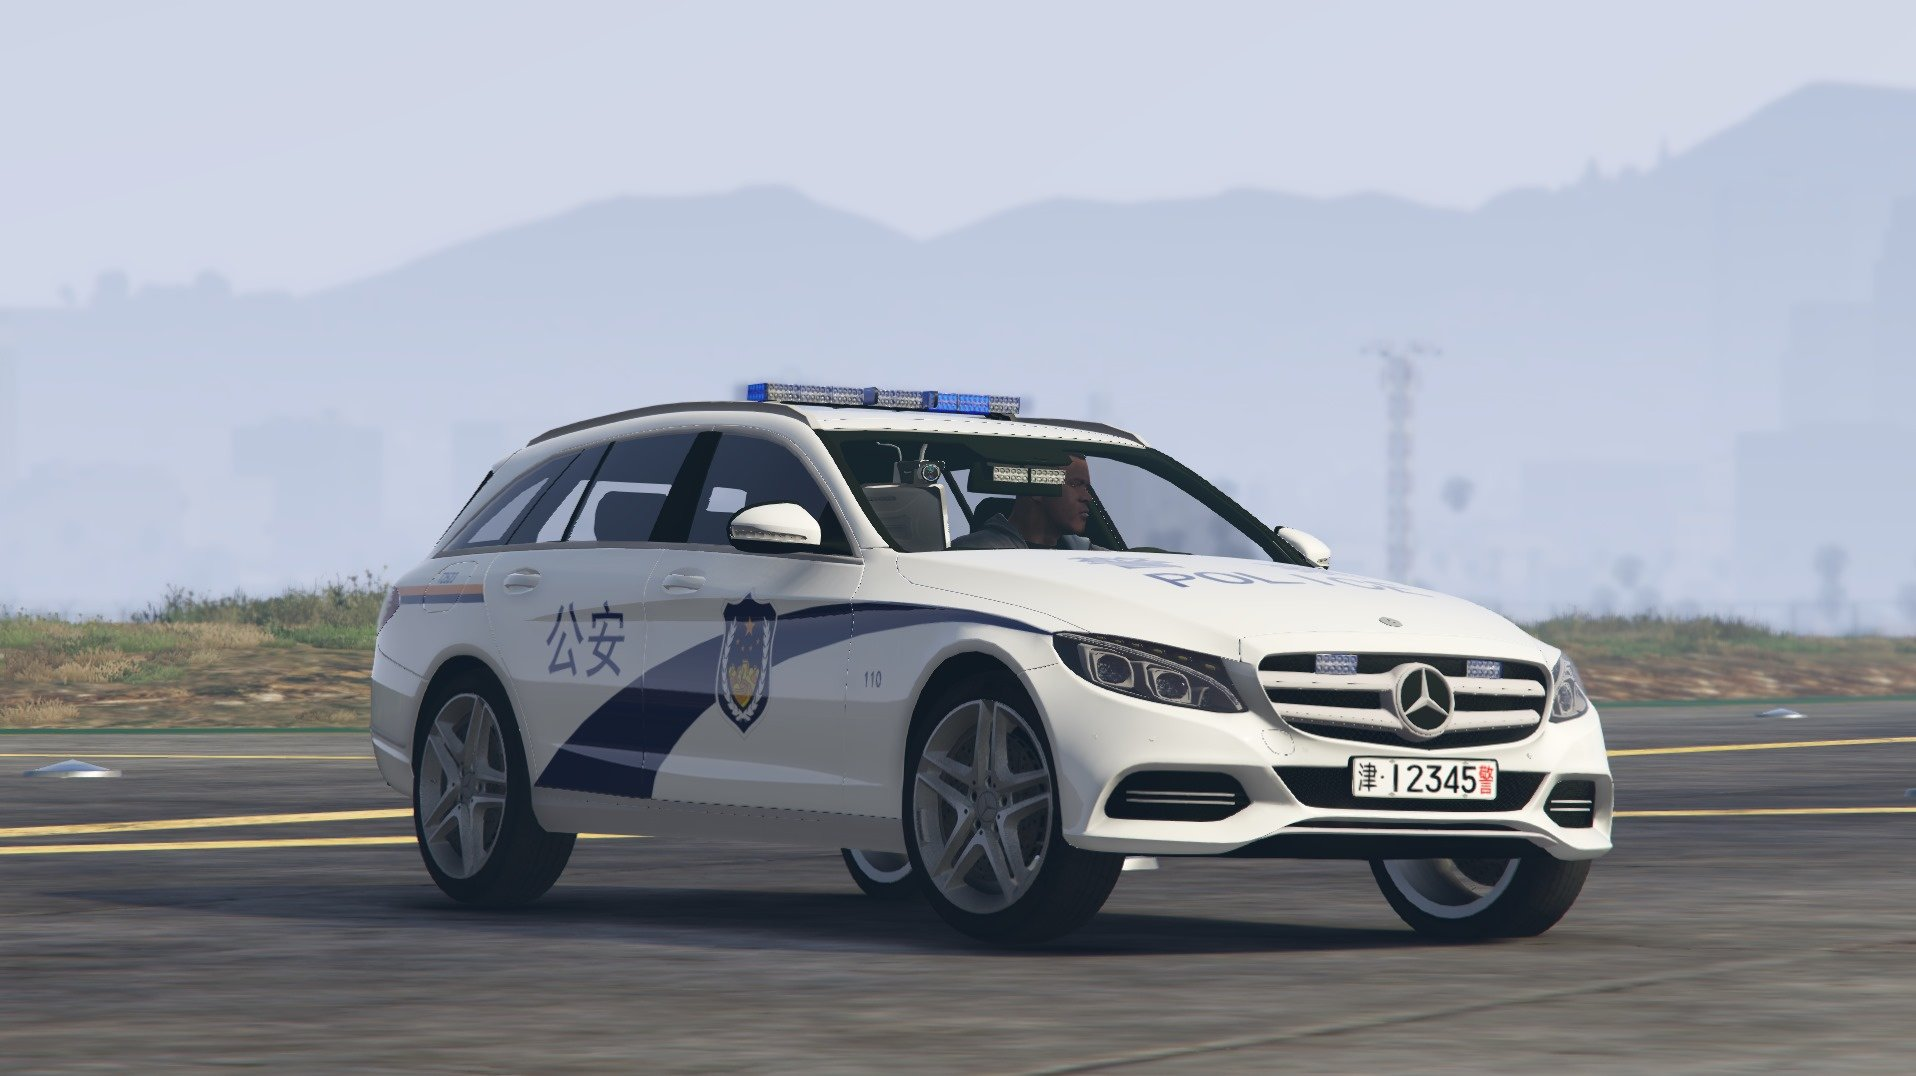 mercedes benz c250 chinese police gta5. Black Bedroom Furniture Sets. Home Design Ideas